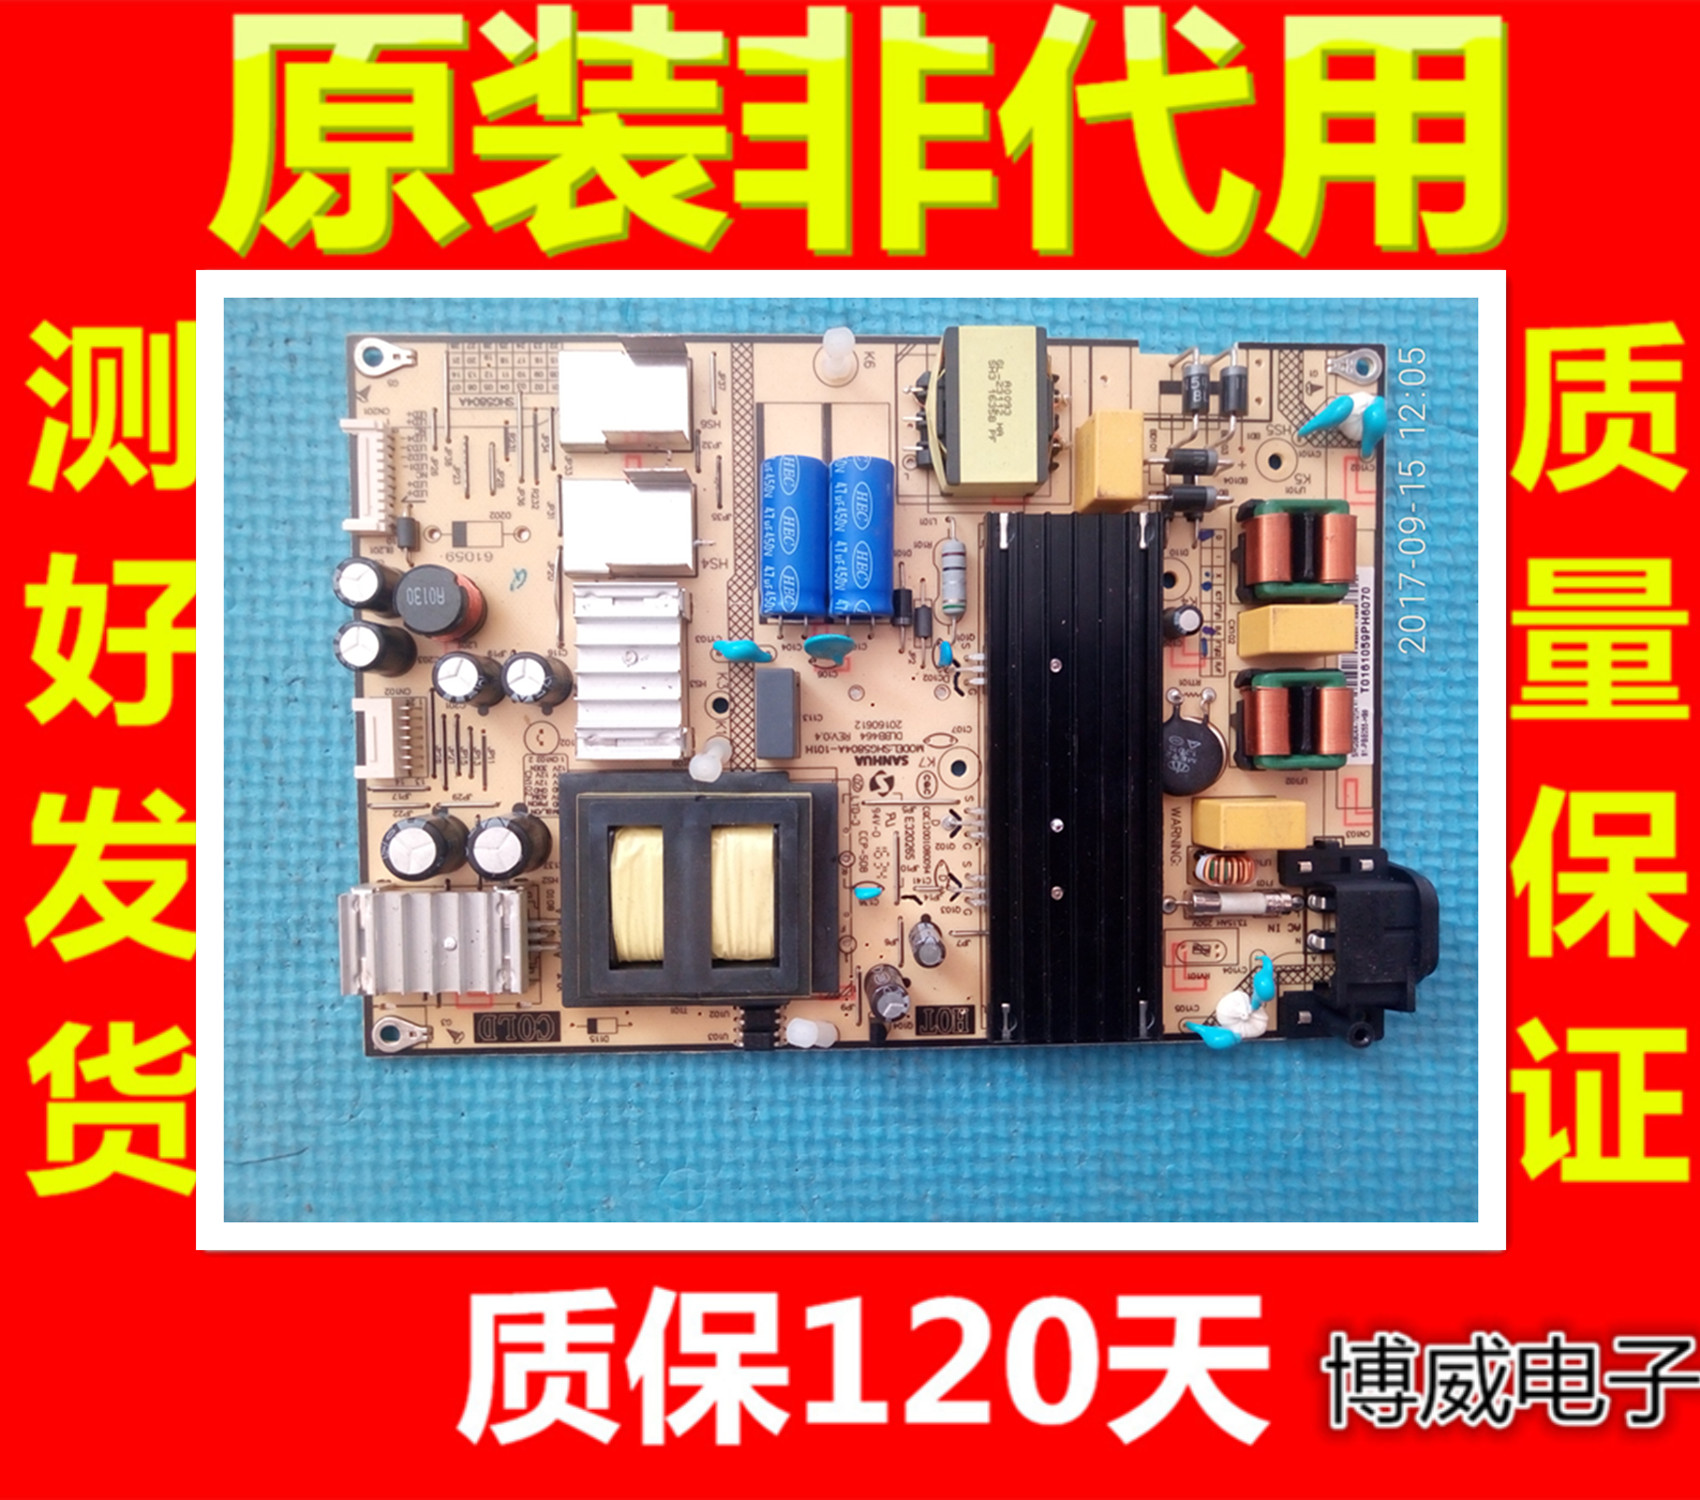 TCLL49P1A-F49 inch LCD smart TV power supply high voltage backlight constant current board LY1427+